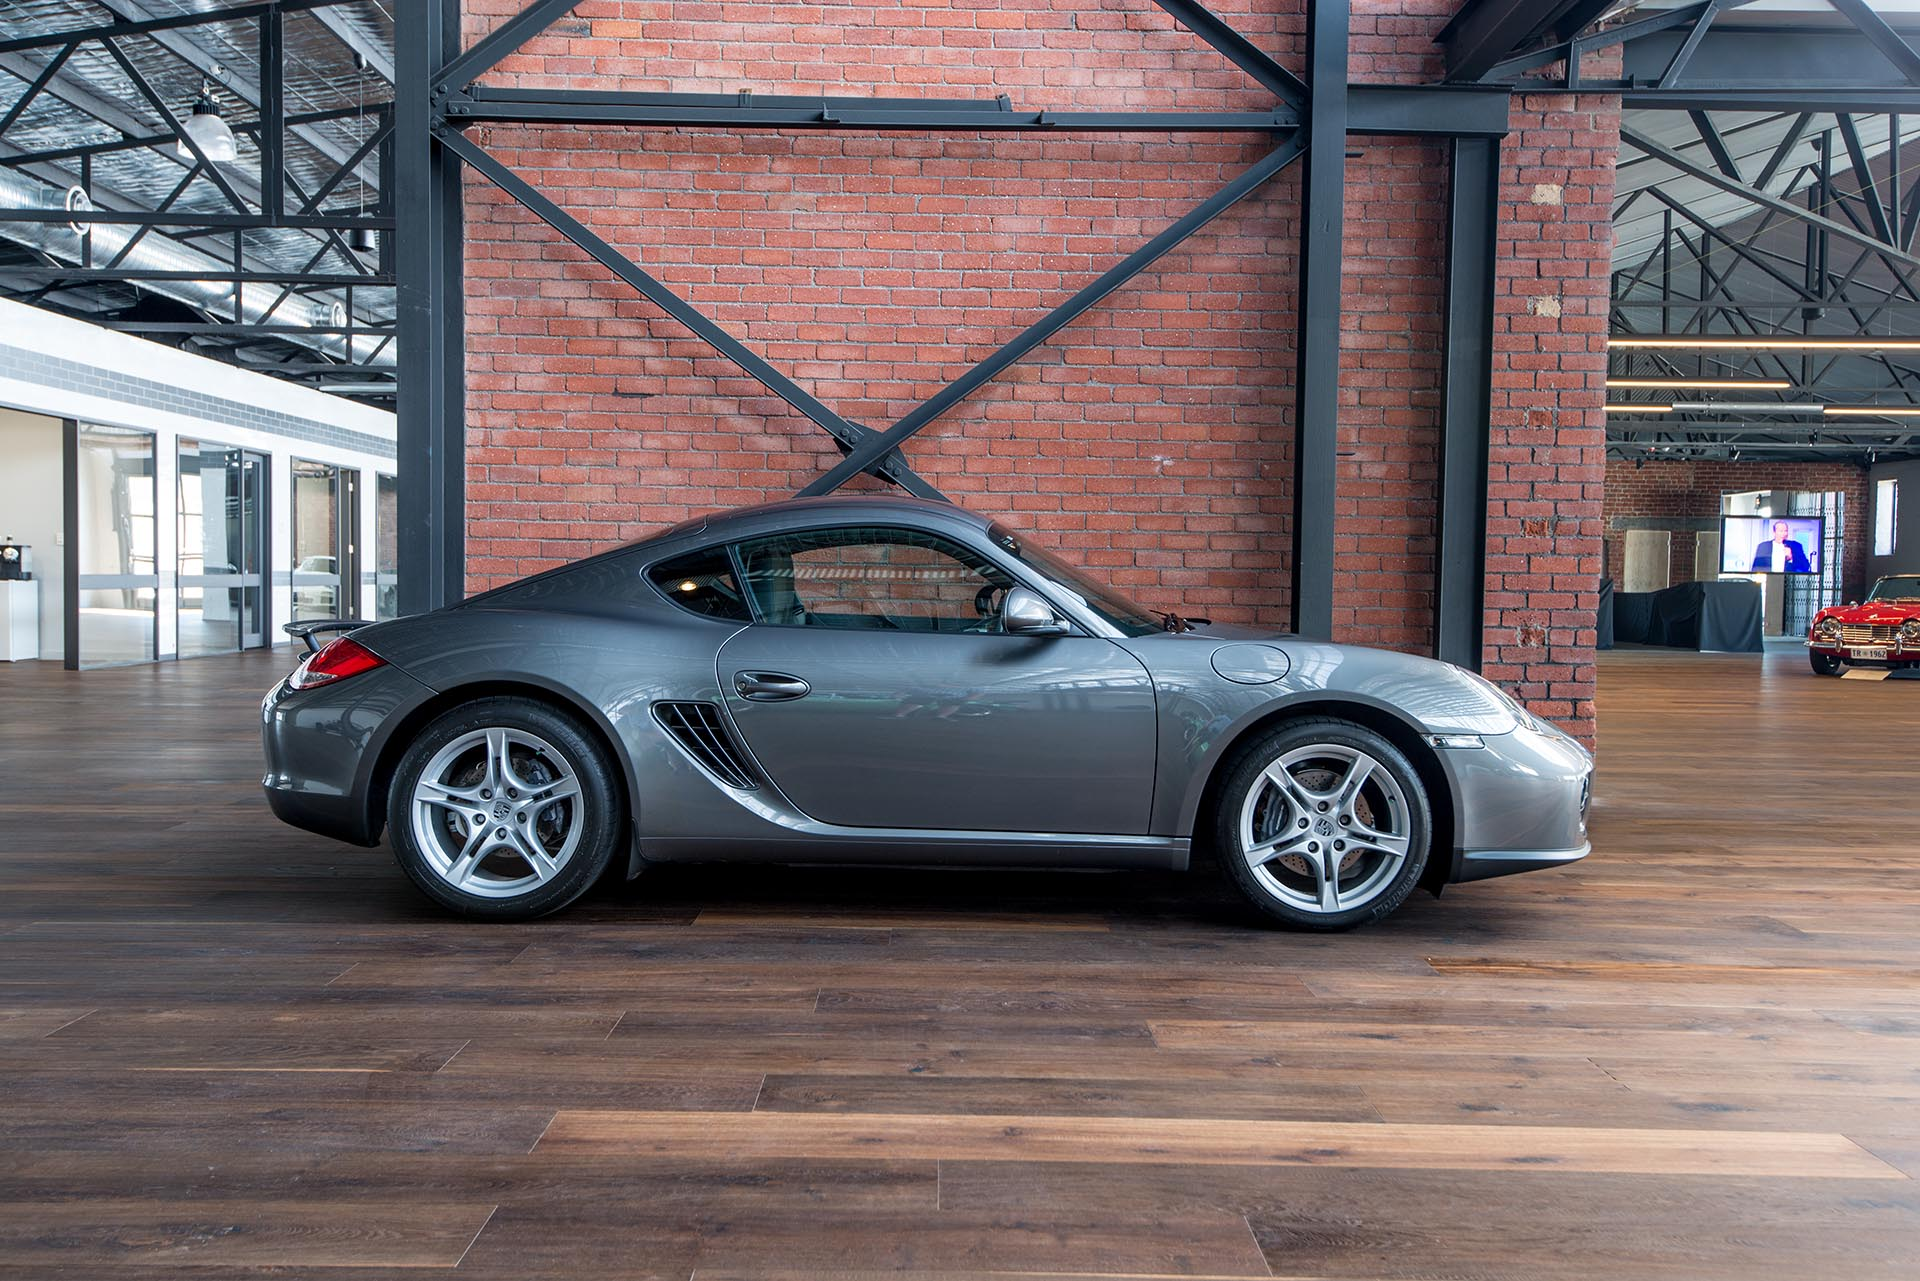 2010 porsche cayman my11 richmonds classic and. Black Bedroom Furniture Sets. Home Design Ideas